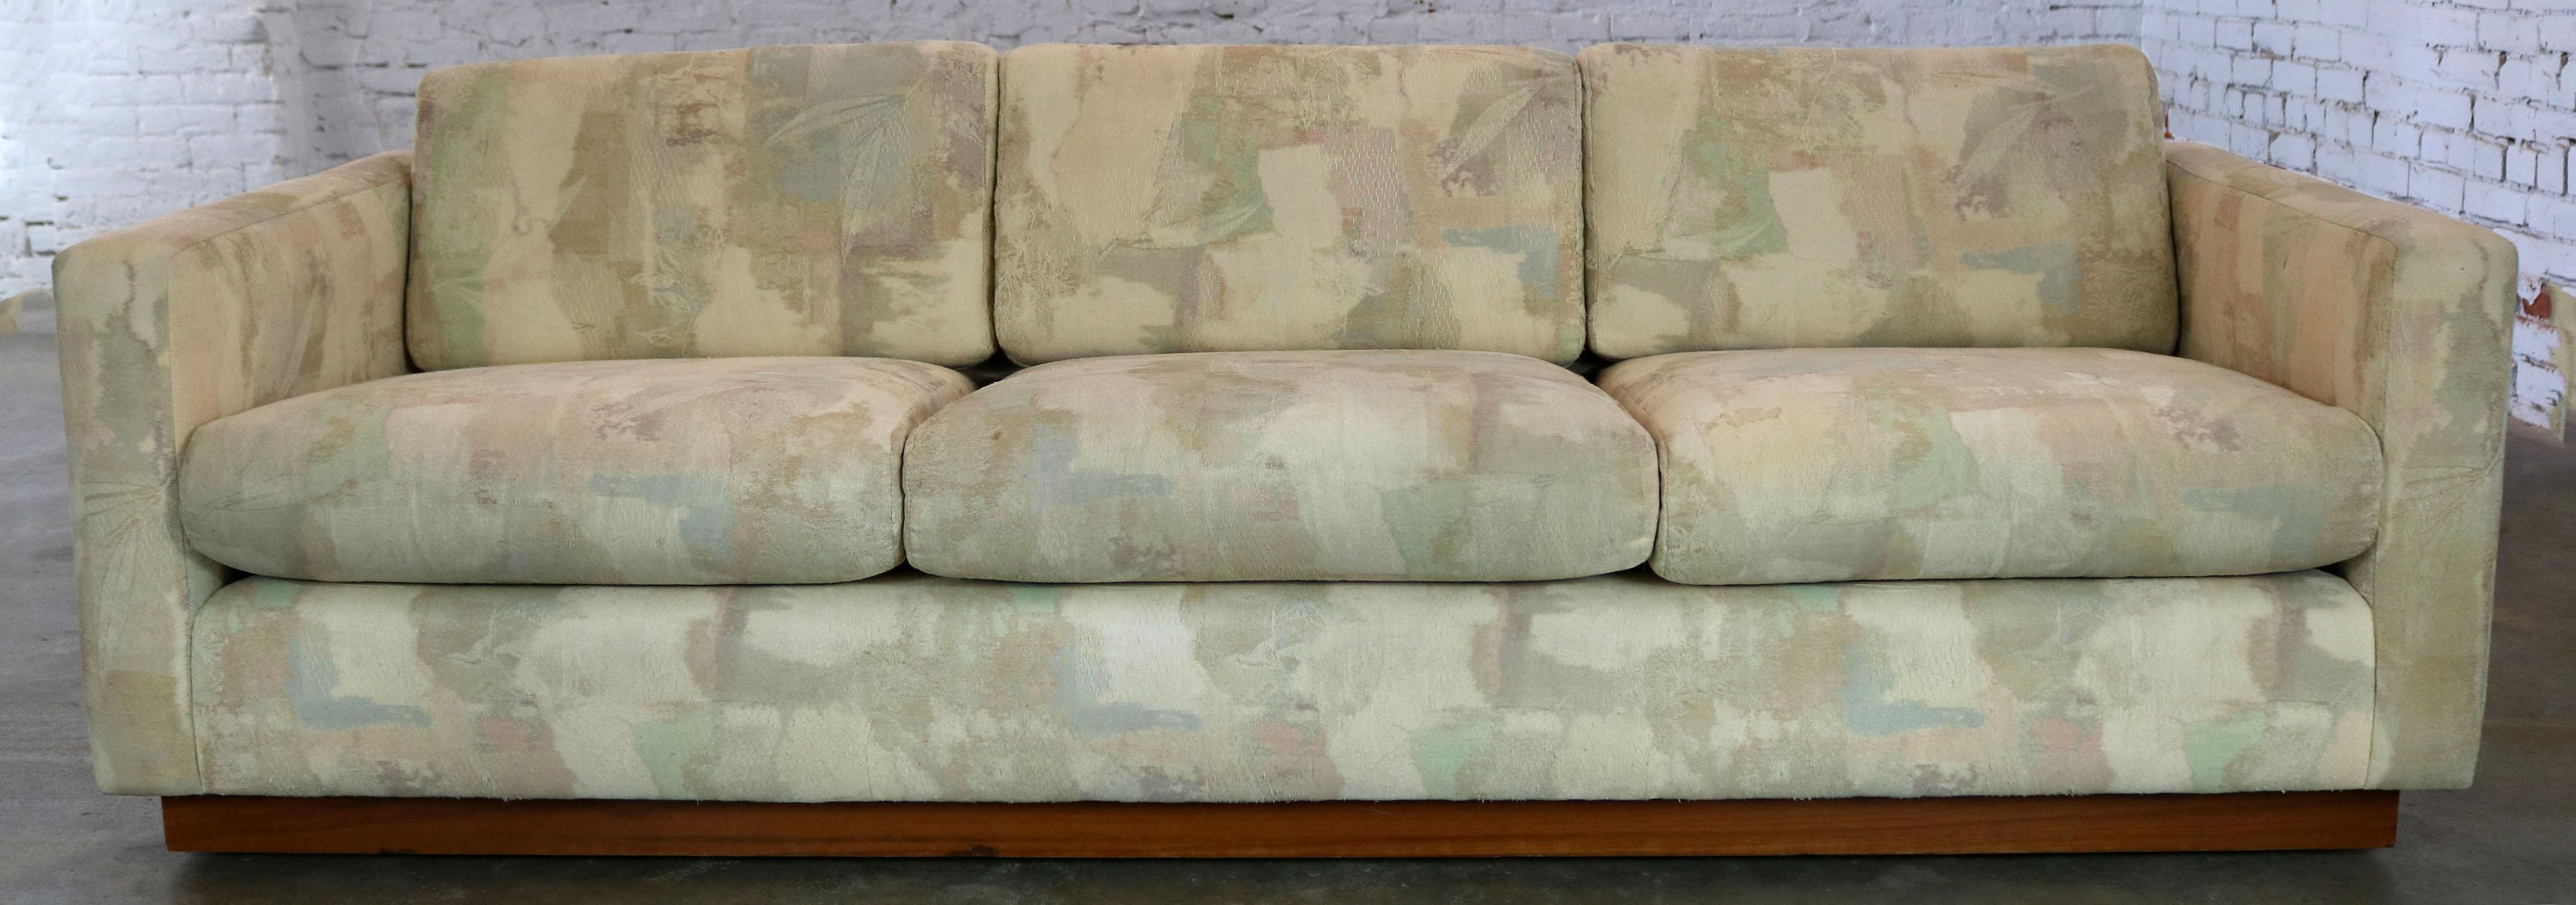 Wonderful Floating Tuxedo Style Sofa Done In The Manner Of Milo Baughman  For Thayer Coggin.